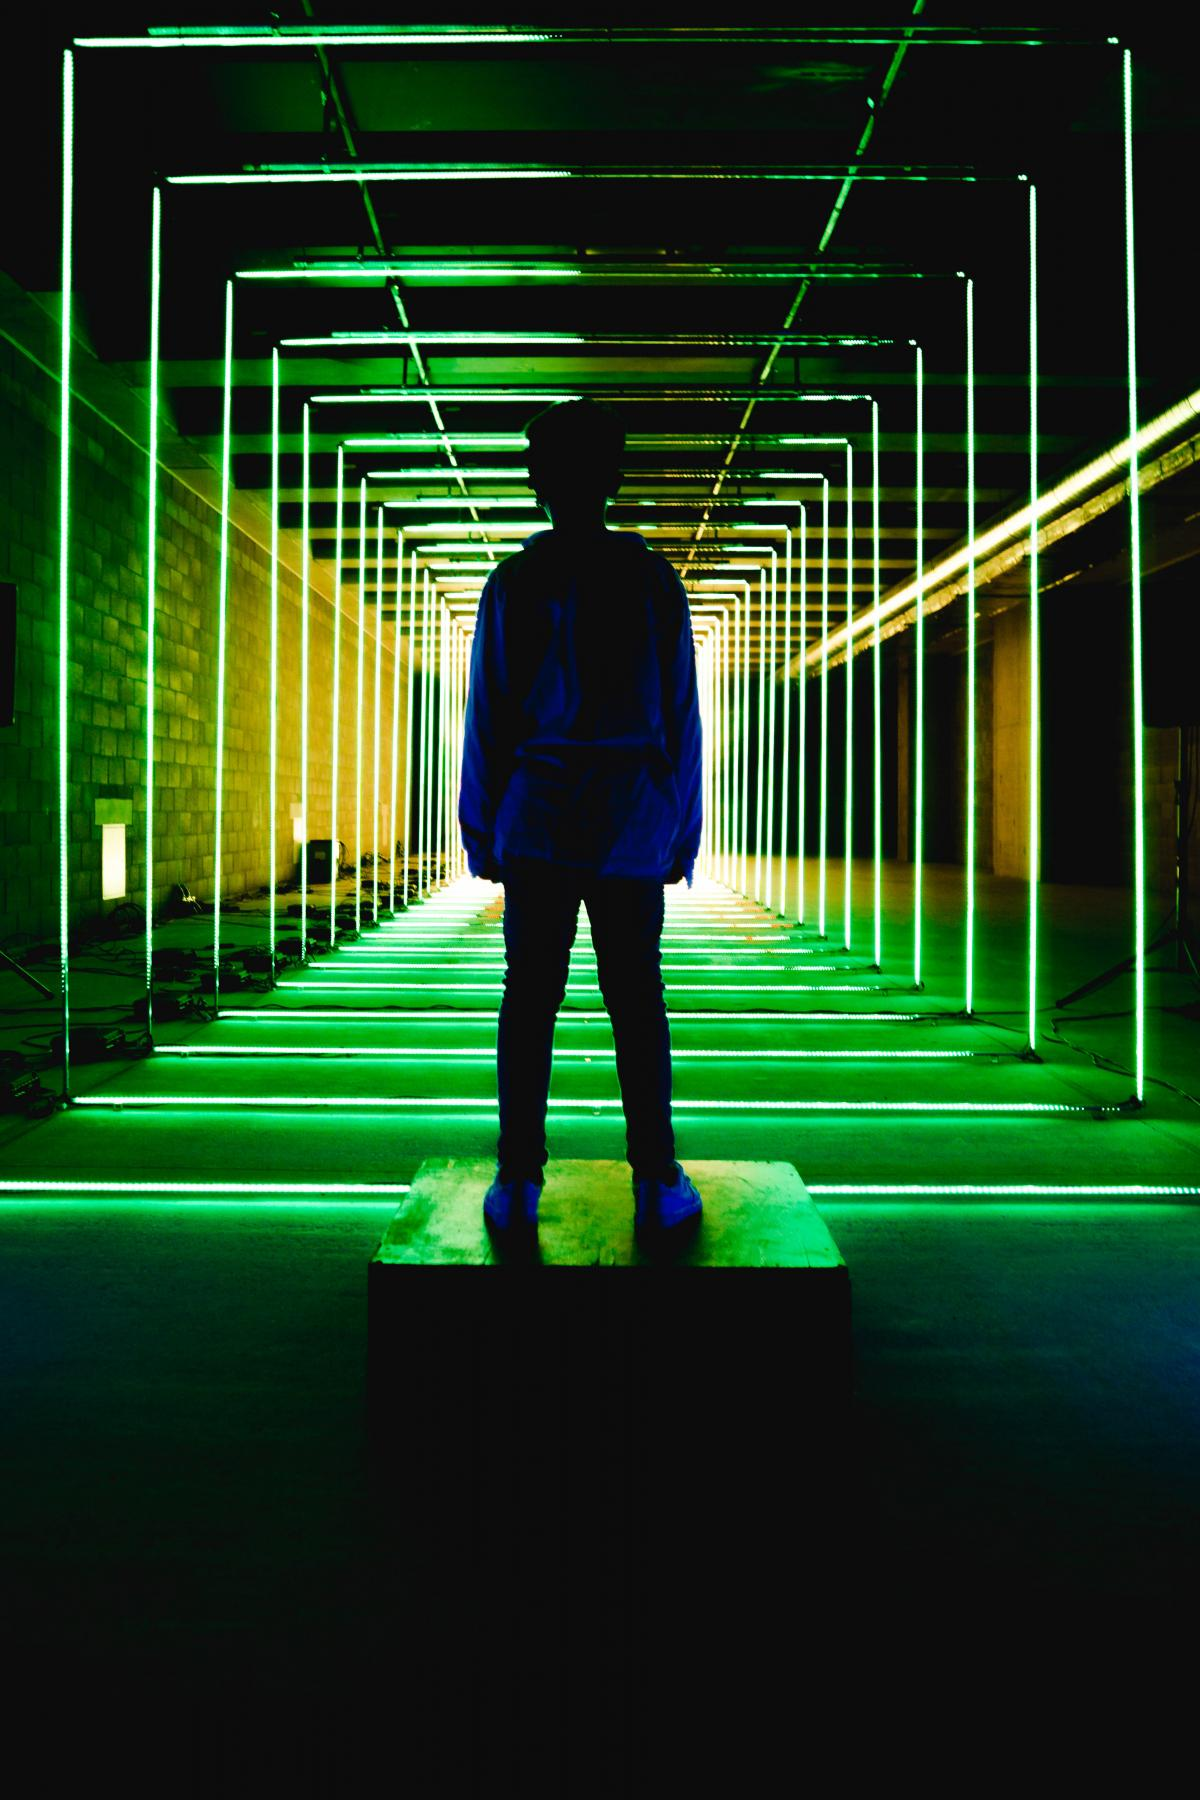 Silhouette Photo of Person Standing in Neon Lit Hallway #339642